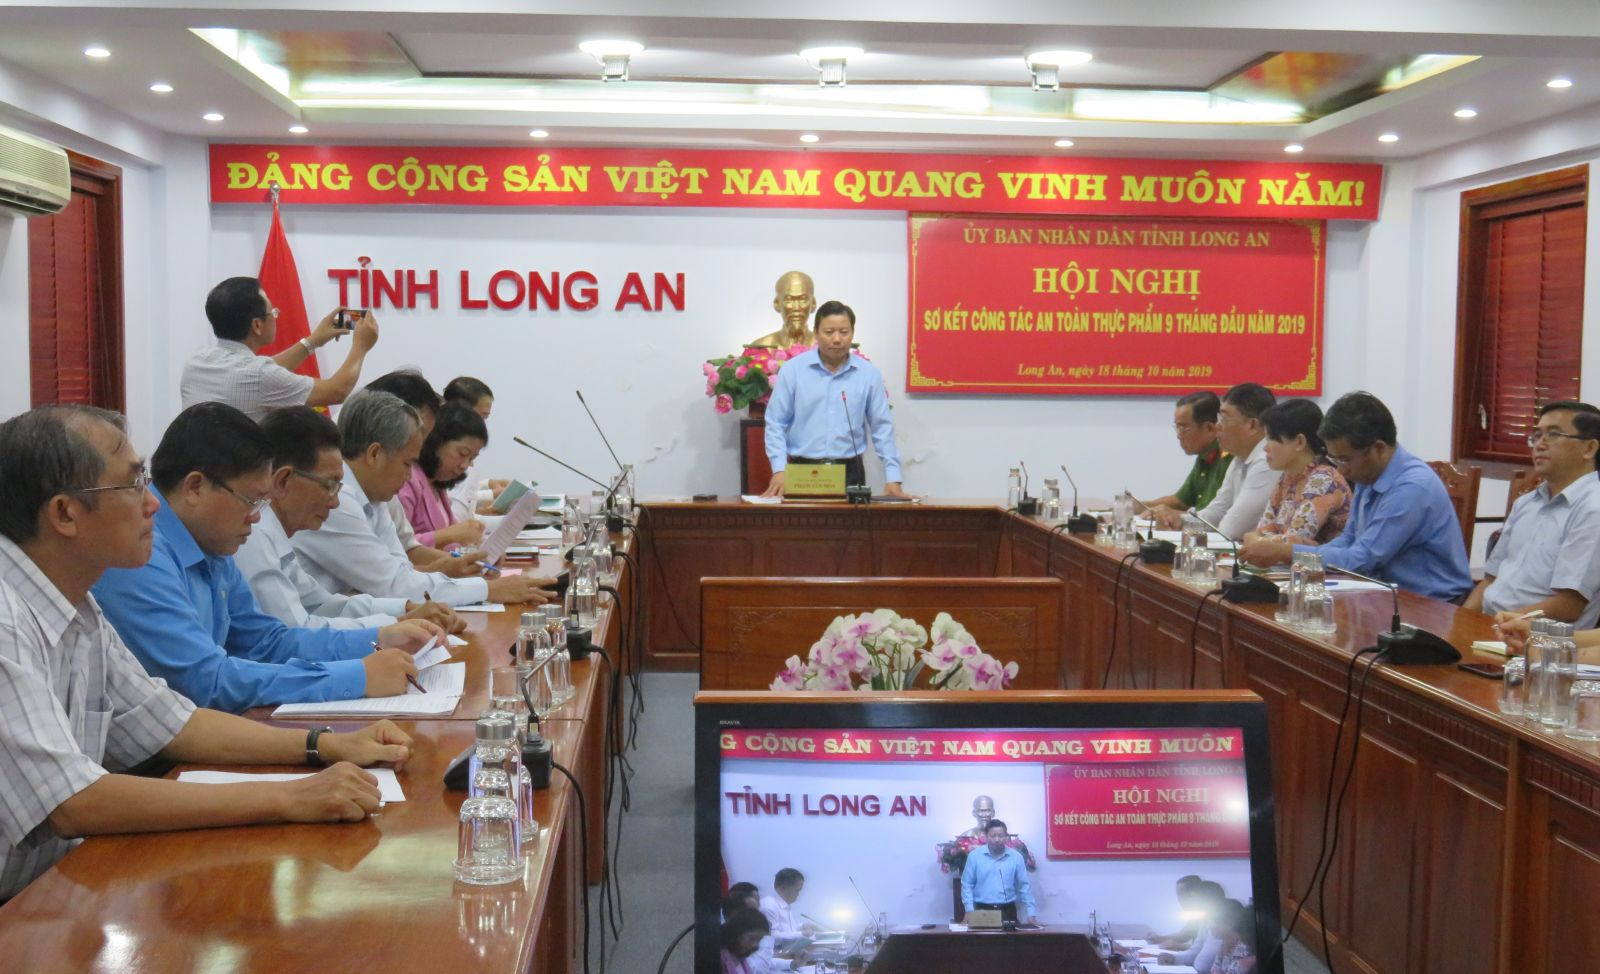 Vice Chairman of Long An Provincial People's Committee - Pham Tan Hoa praised the departments, branches and localities for proactively developing regulations to coordinate in performing tasks assigned to manage in the field of food safety.